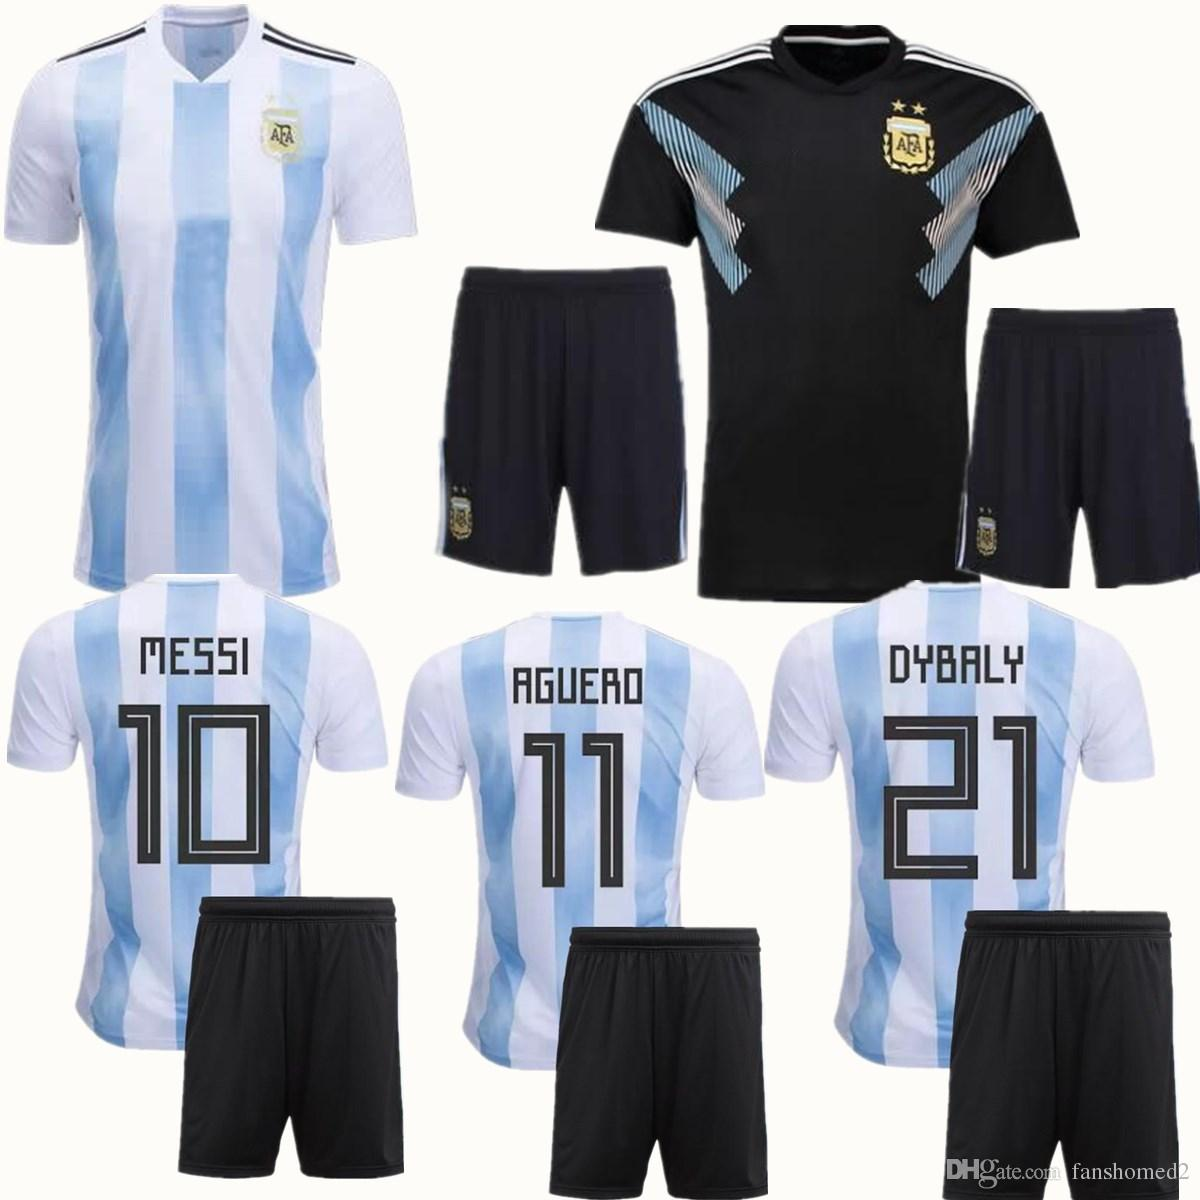 25cf68e2067 2019 2018 World Cup Argentina Away Soccer Sets MESSI DI MARIA AGUERO  KOMPANY DYBALA Jersey Away Black Kit Adults Uniform Argentina Football Set  From ...